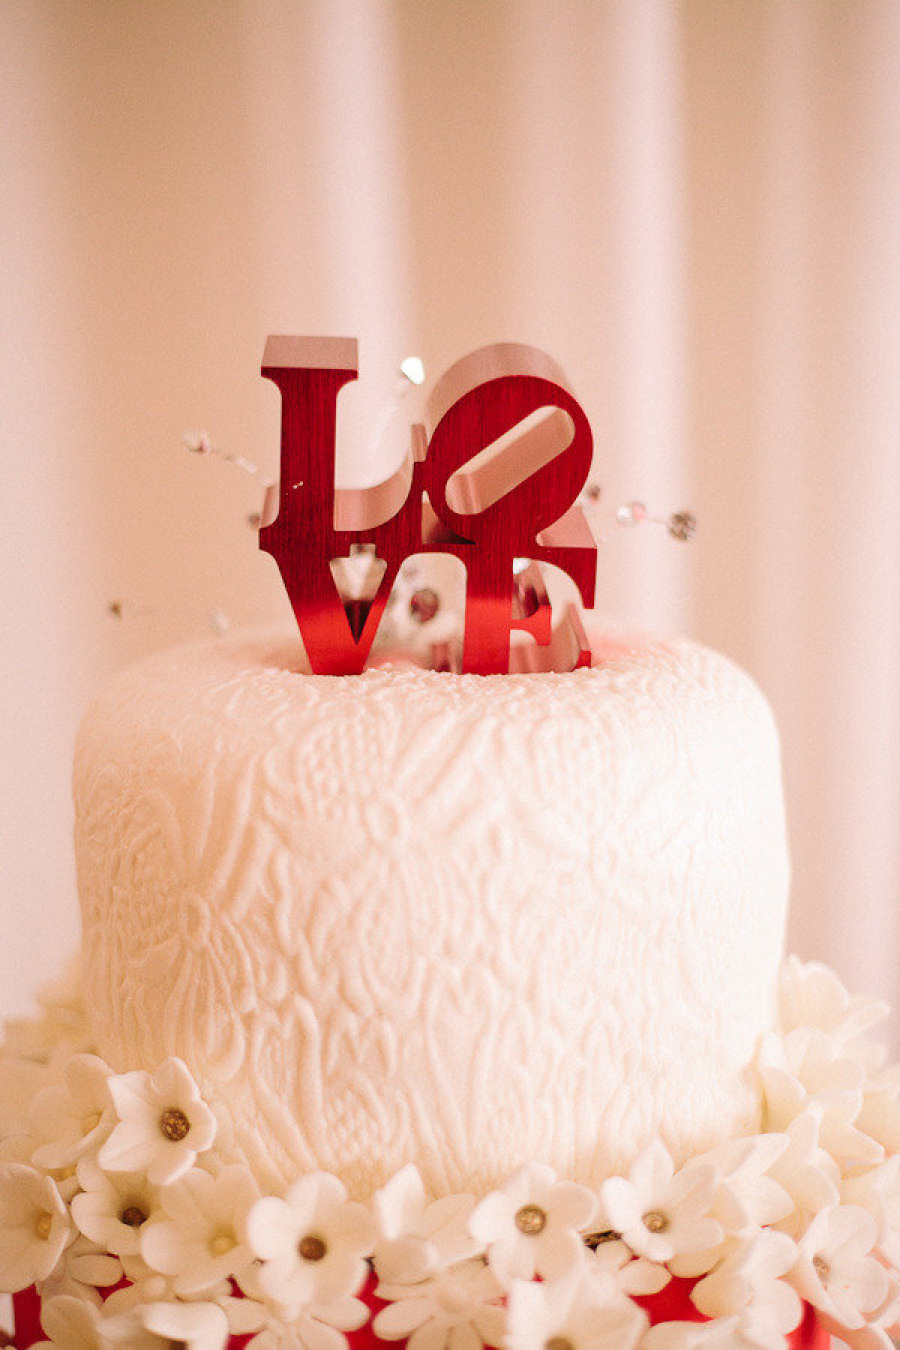 Ahhh…LOVEly! This is a simple, yet elegant wedding cake idea!    - Kimberly